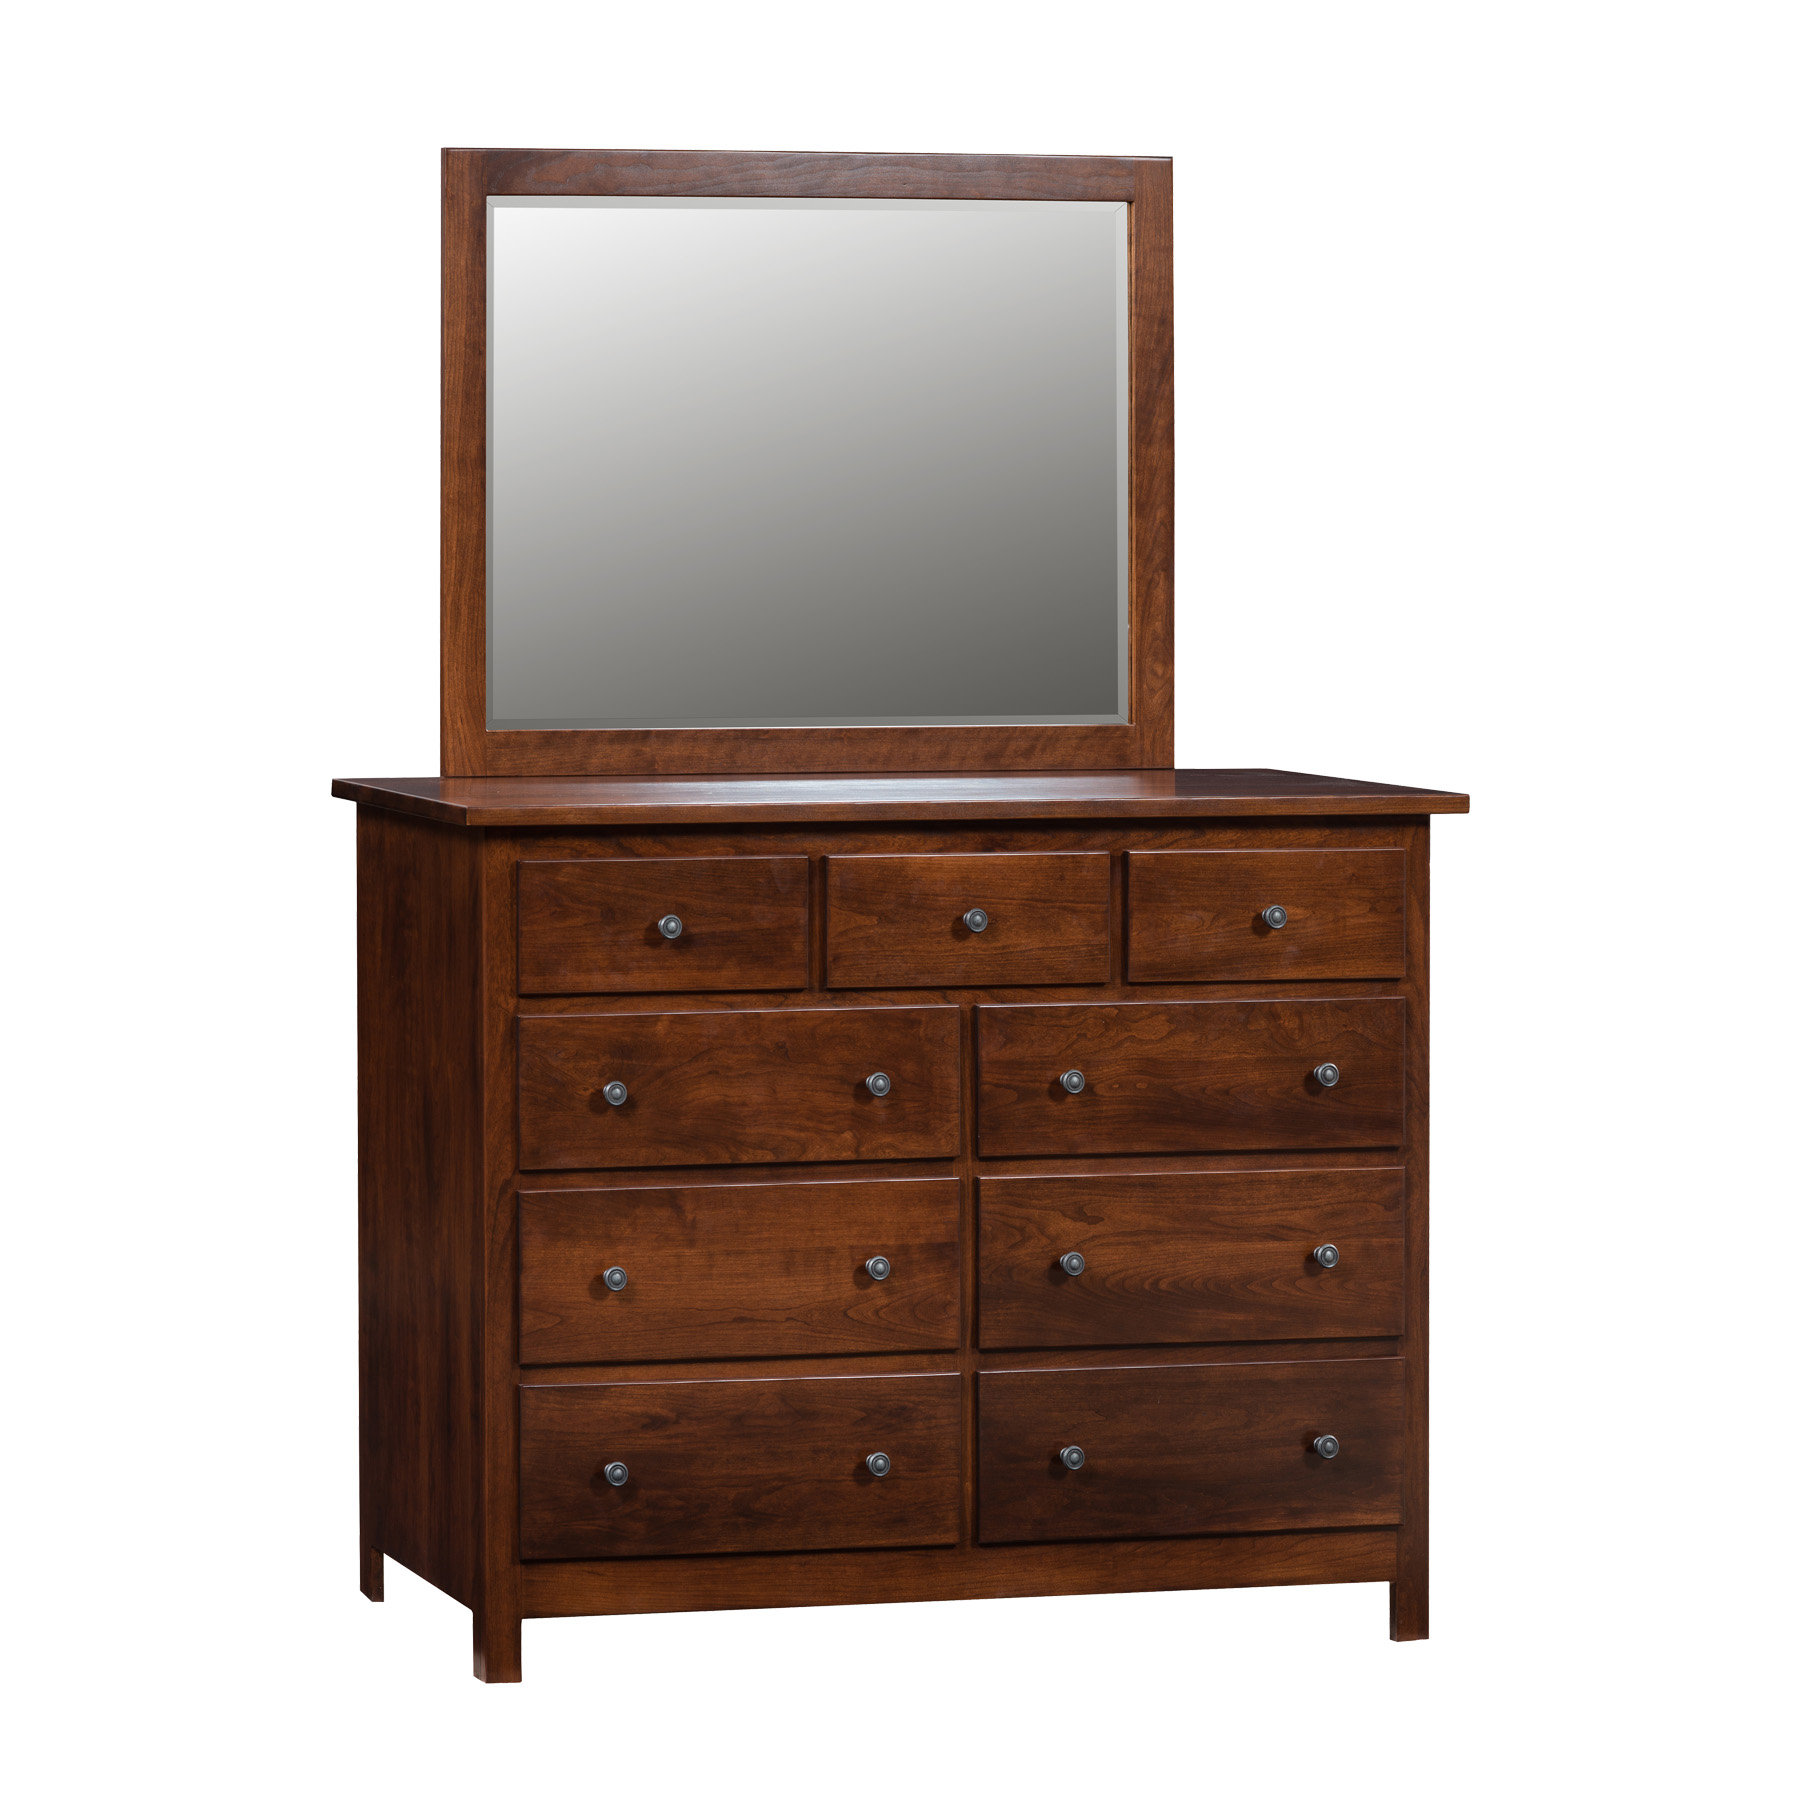 Shaker Double Mule Dresser and Mirror